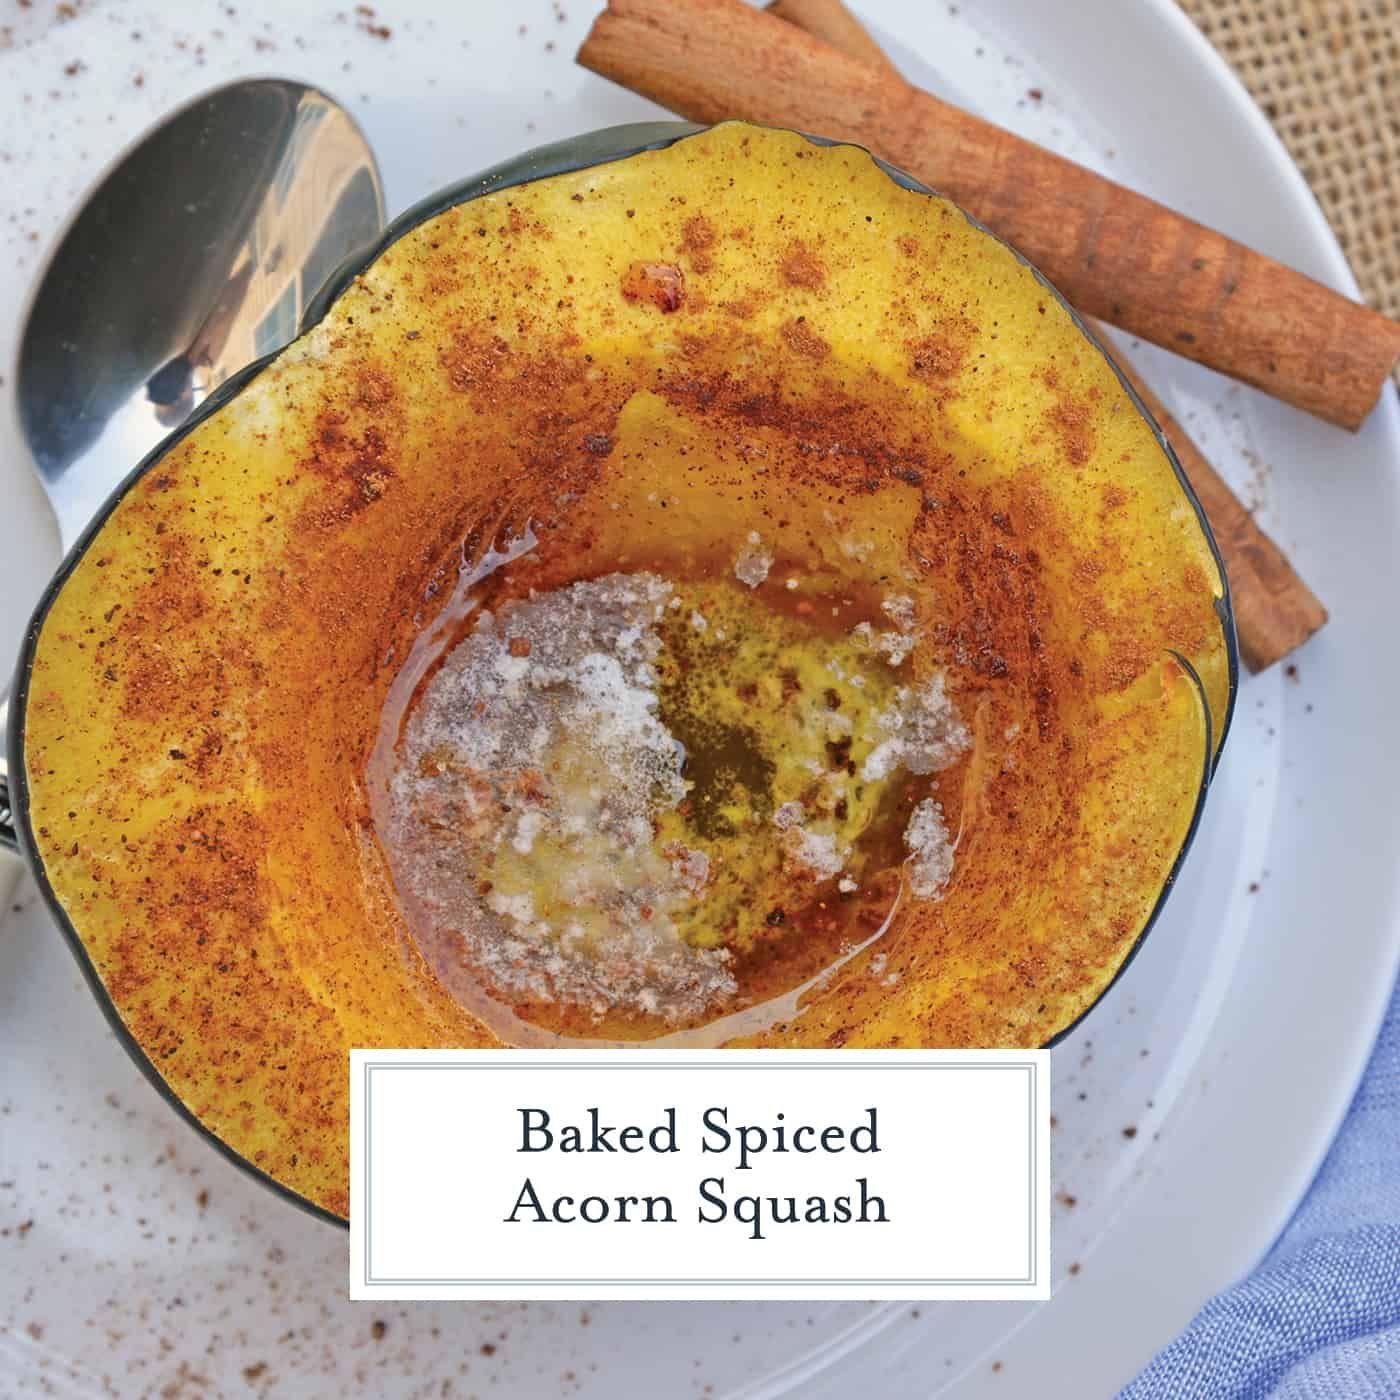 Baked Acorn Squash Is Baked To Soft Perfection With Butter Maple